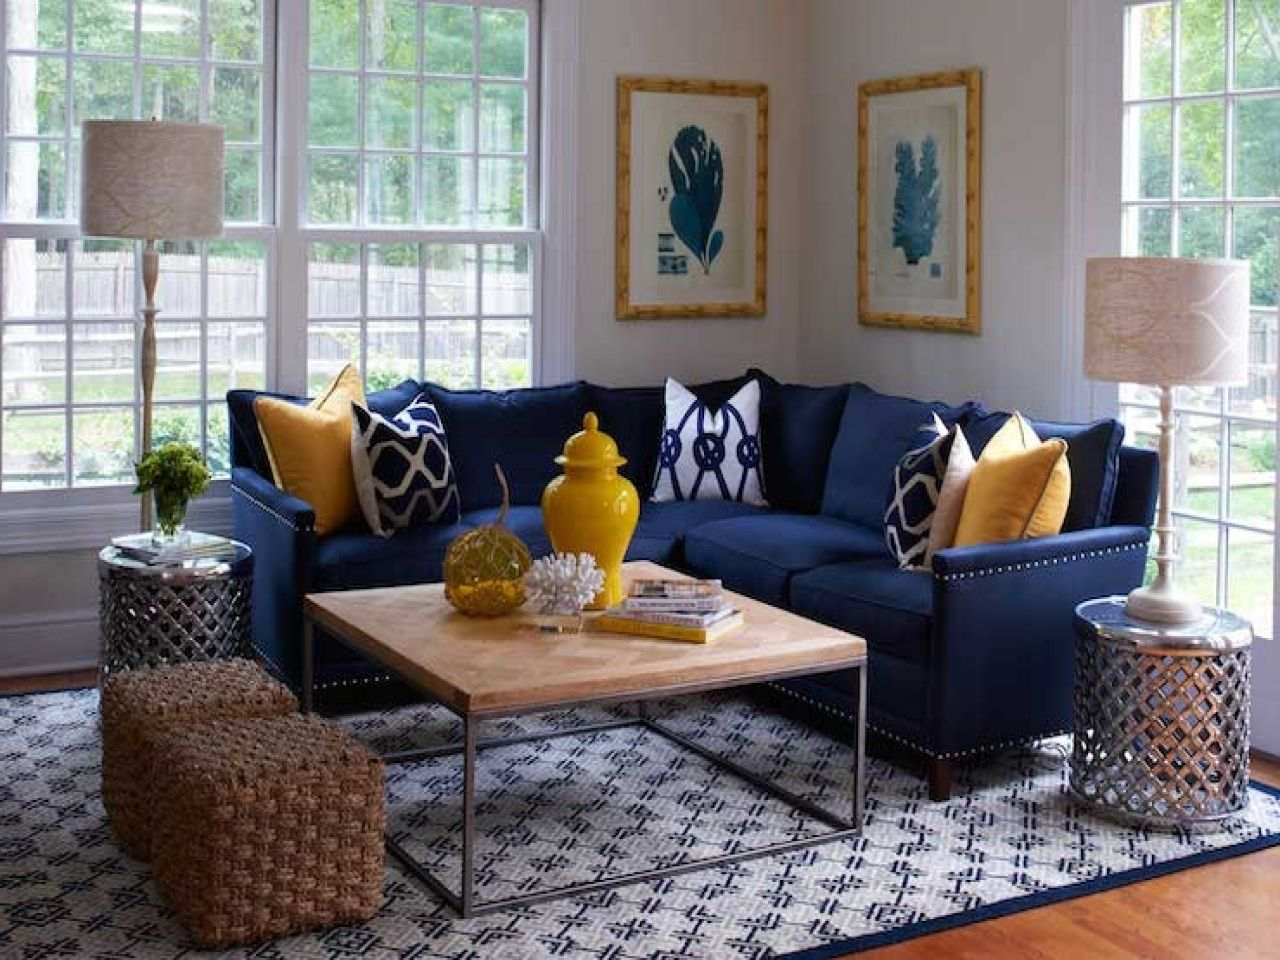 Explore Gallery Of Dark Blue Sofas 3 Of 20 Blue Living Room Decor Blue Sofas Living Room Blue Couch Living